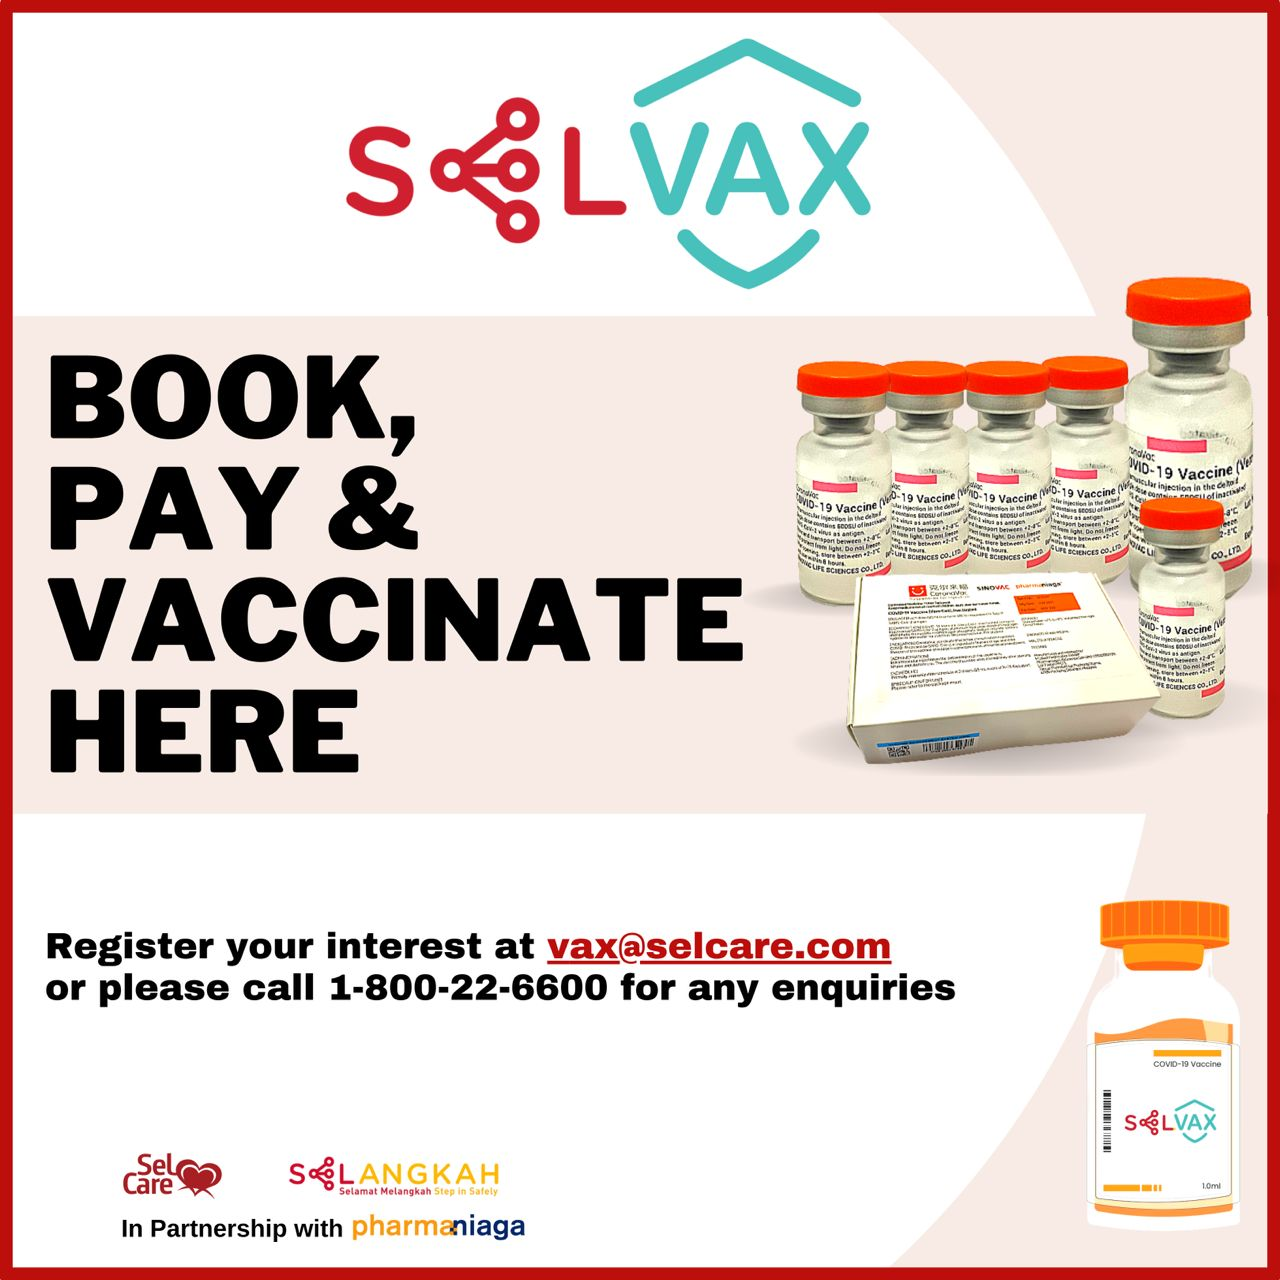 SELVAX PROGRAMME NOW AVAILABLE FOR PUBLIC